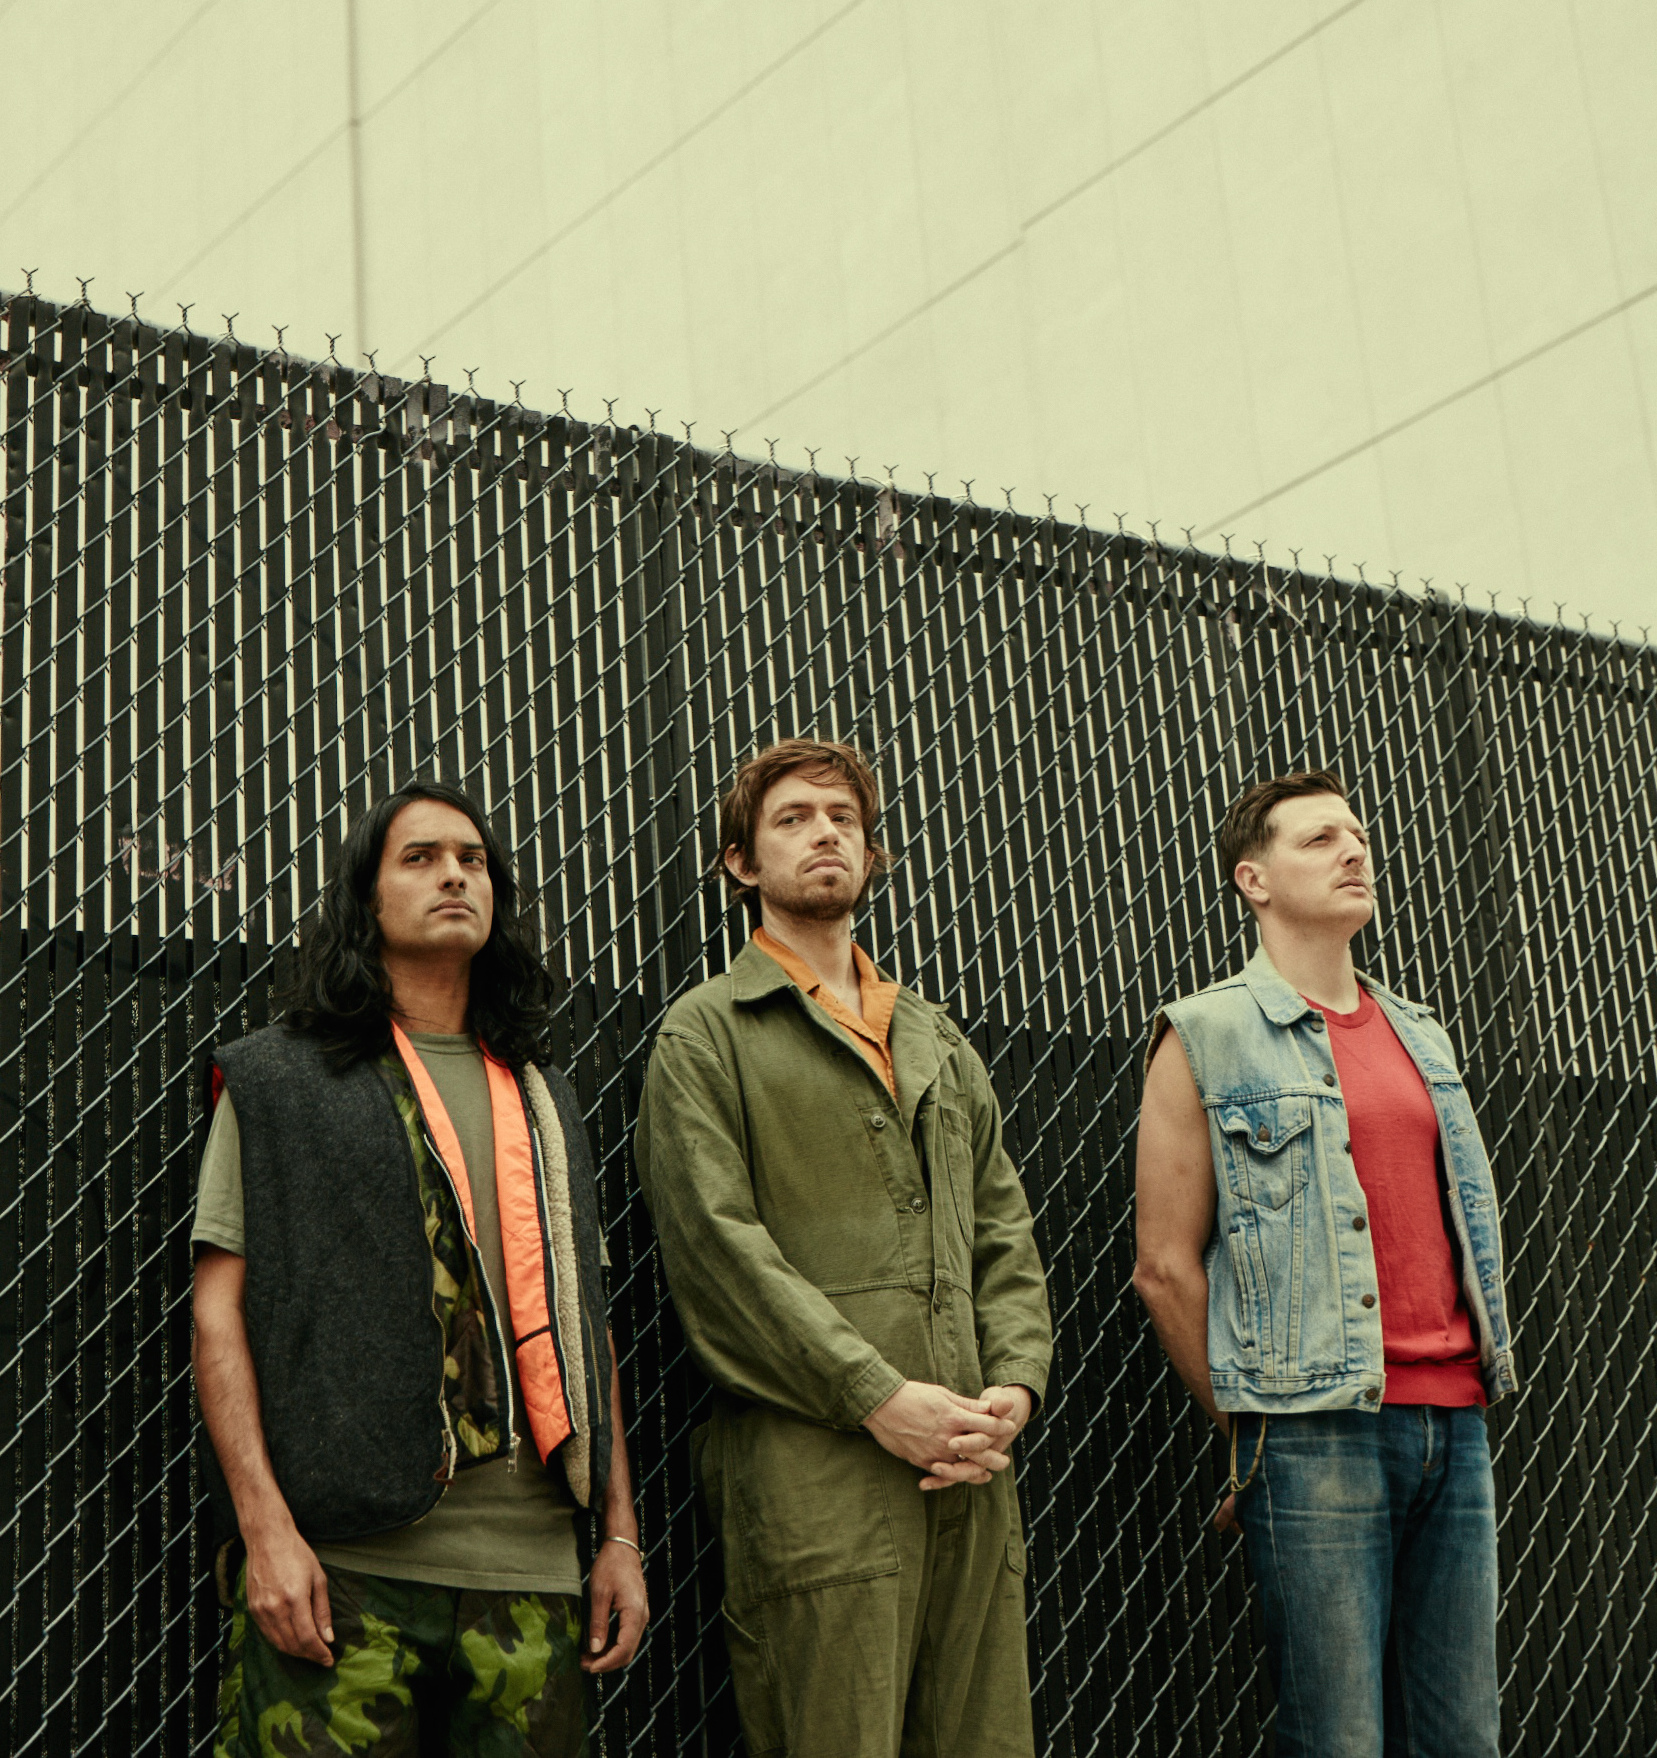 Yeasayer_Credit_Eliot_Lee_Hazel_00_0094 (1).jpg